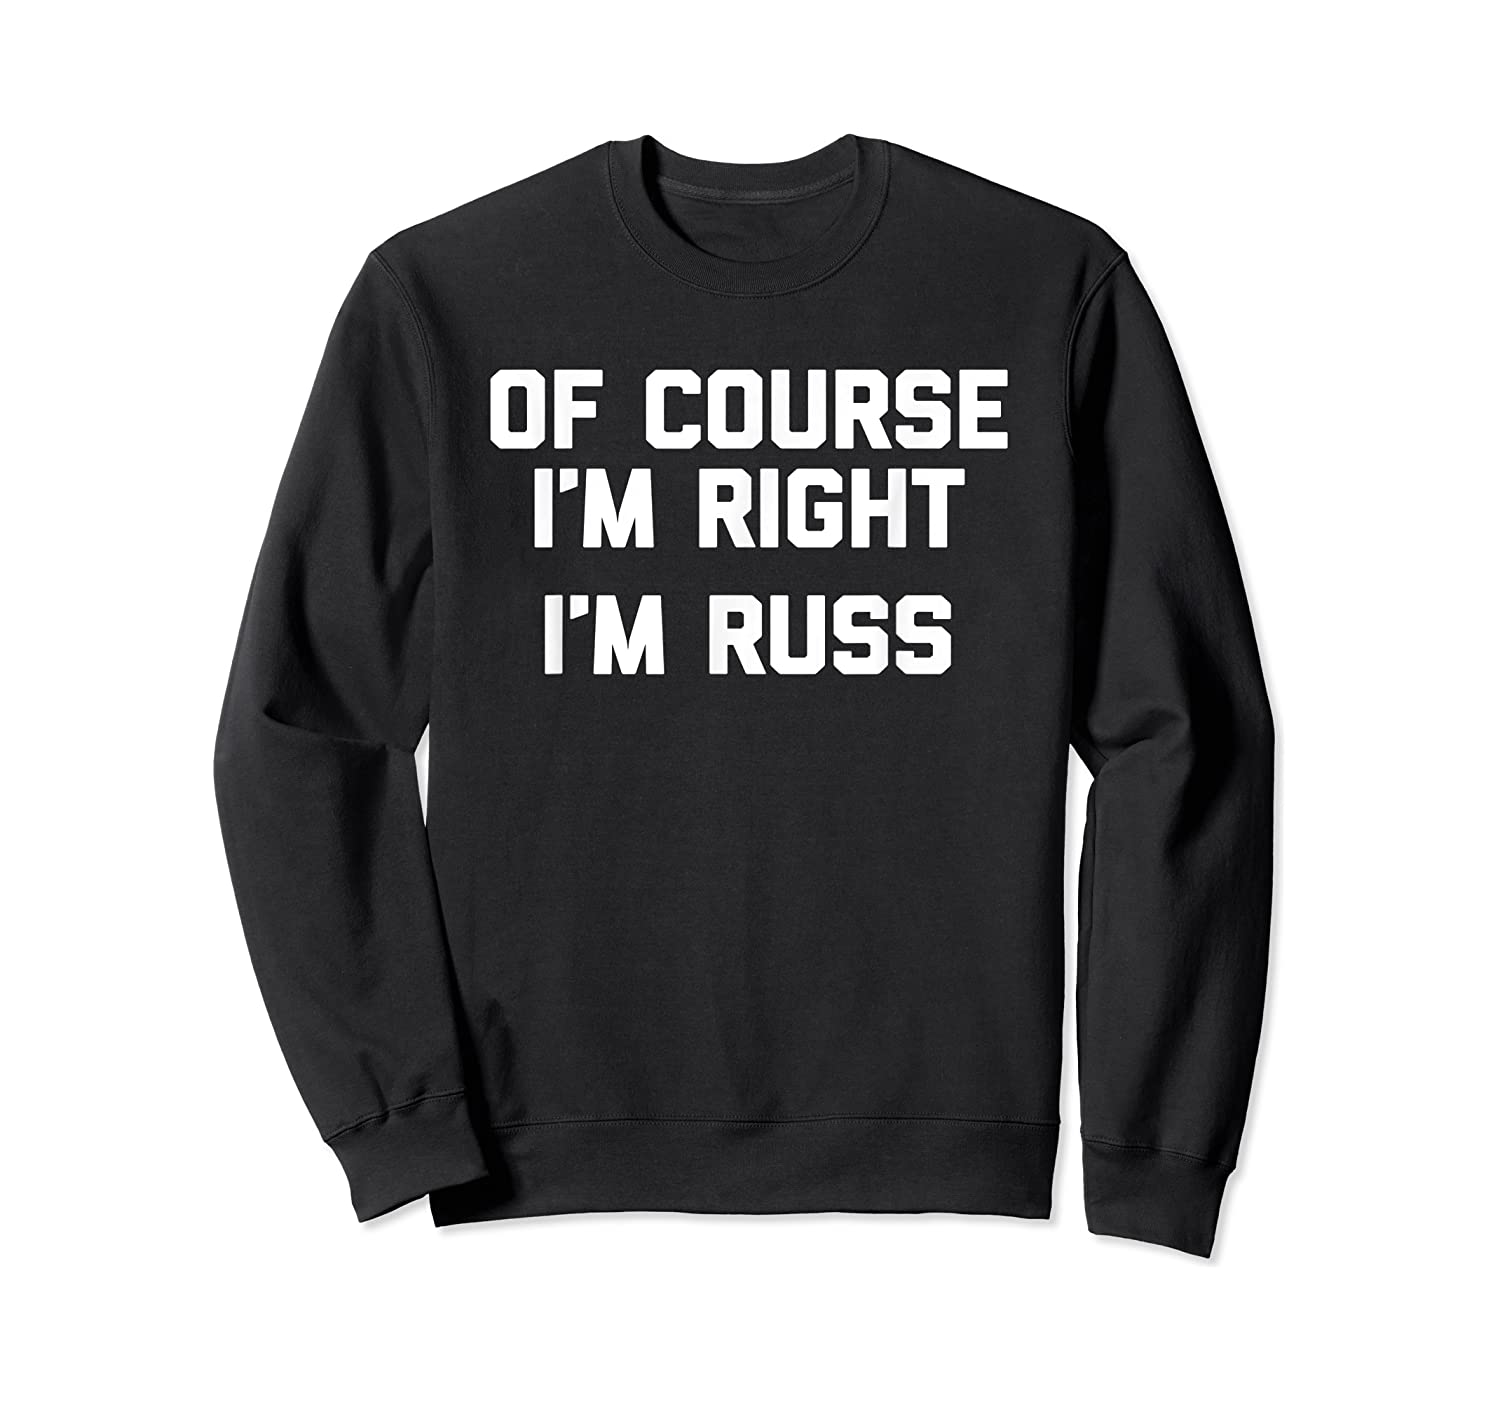 Of Course I'm Right, I'm Russ Funny Saying Sarcastic Shirts Crewneck Sweater